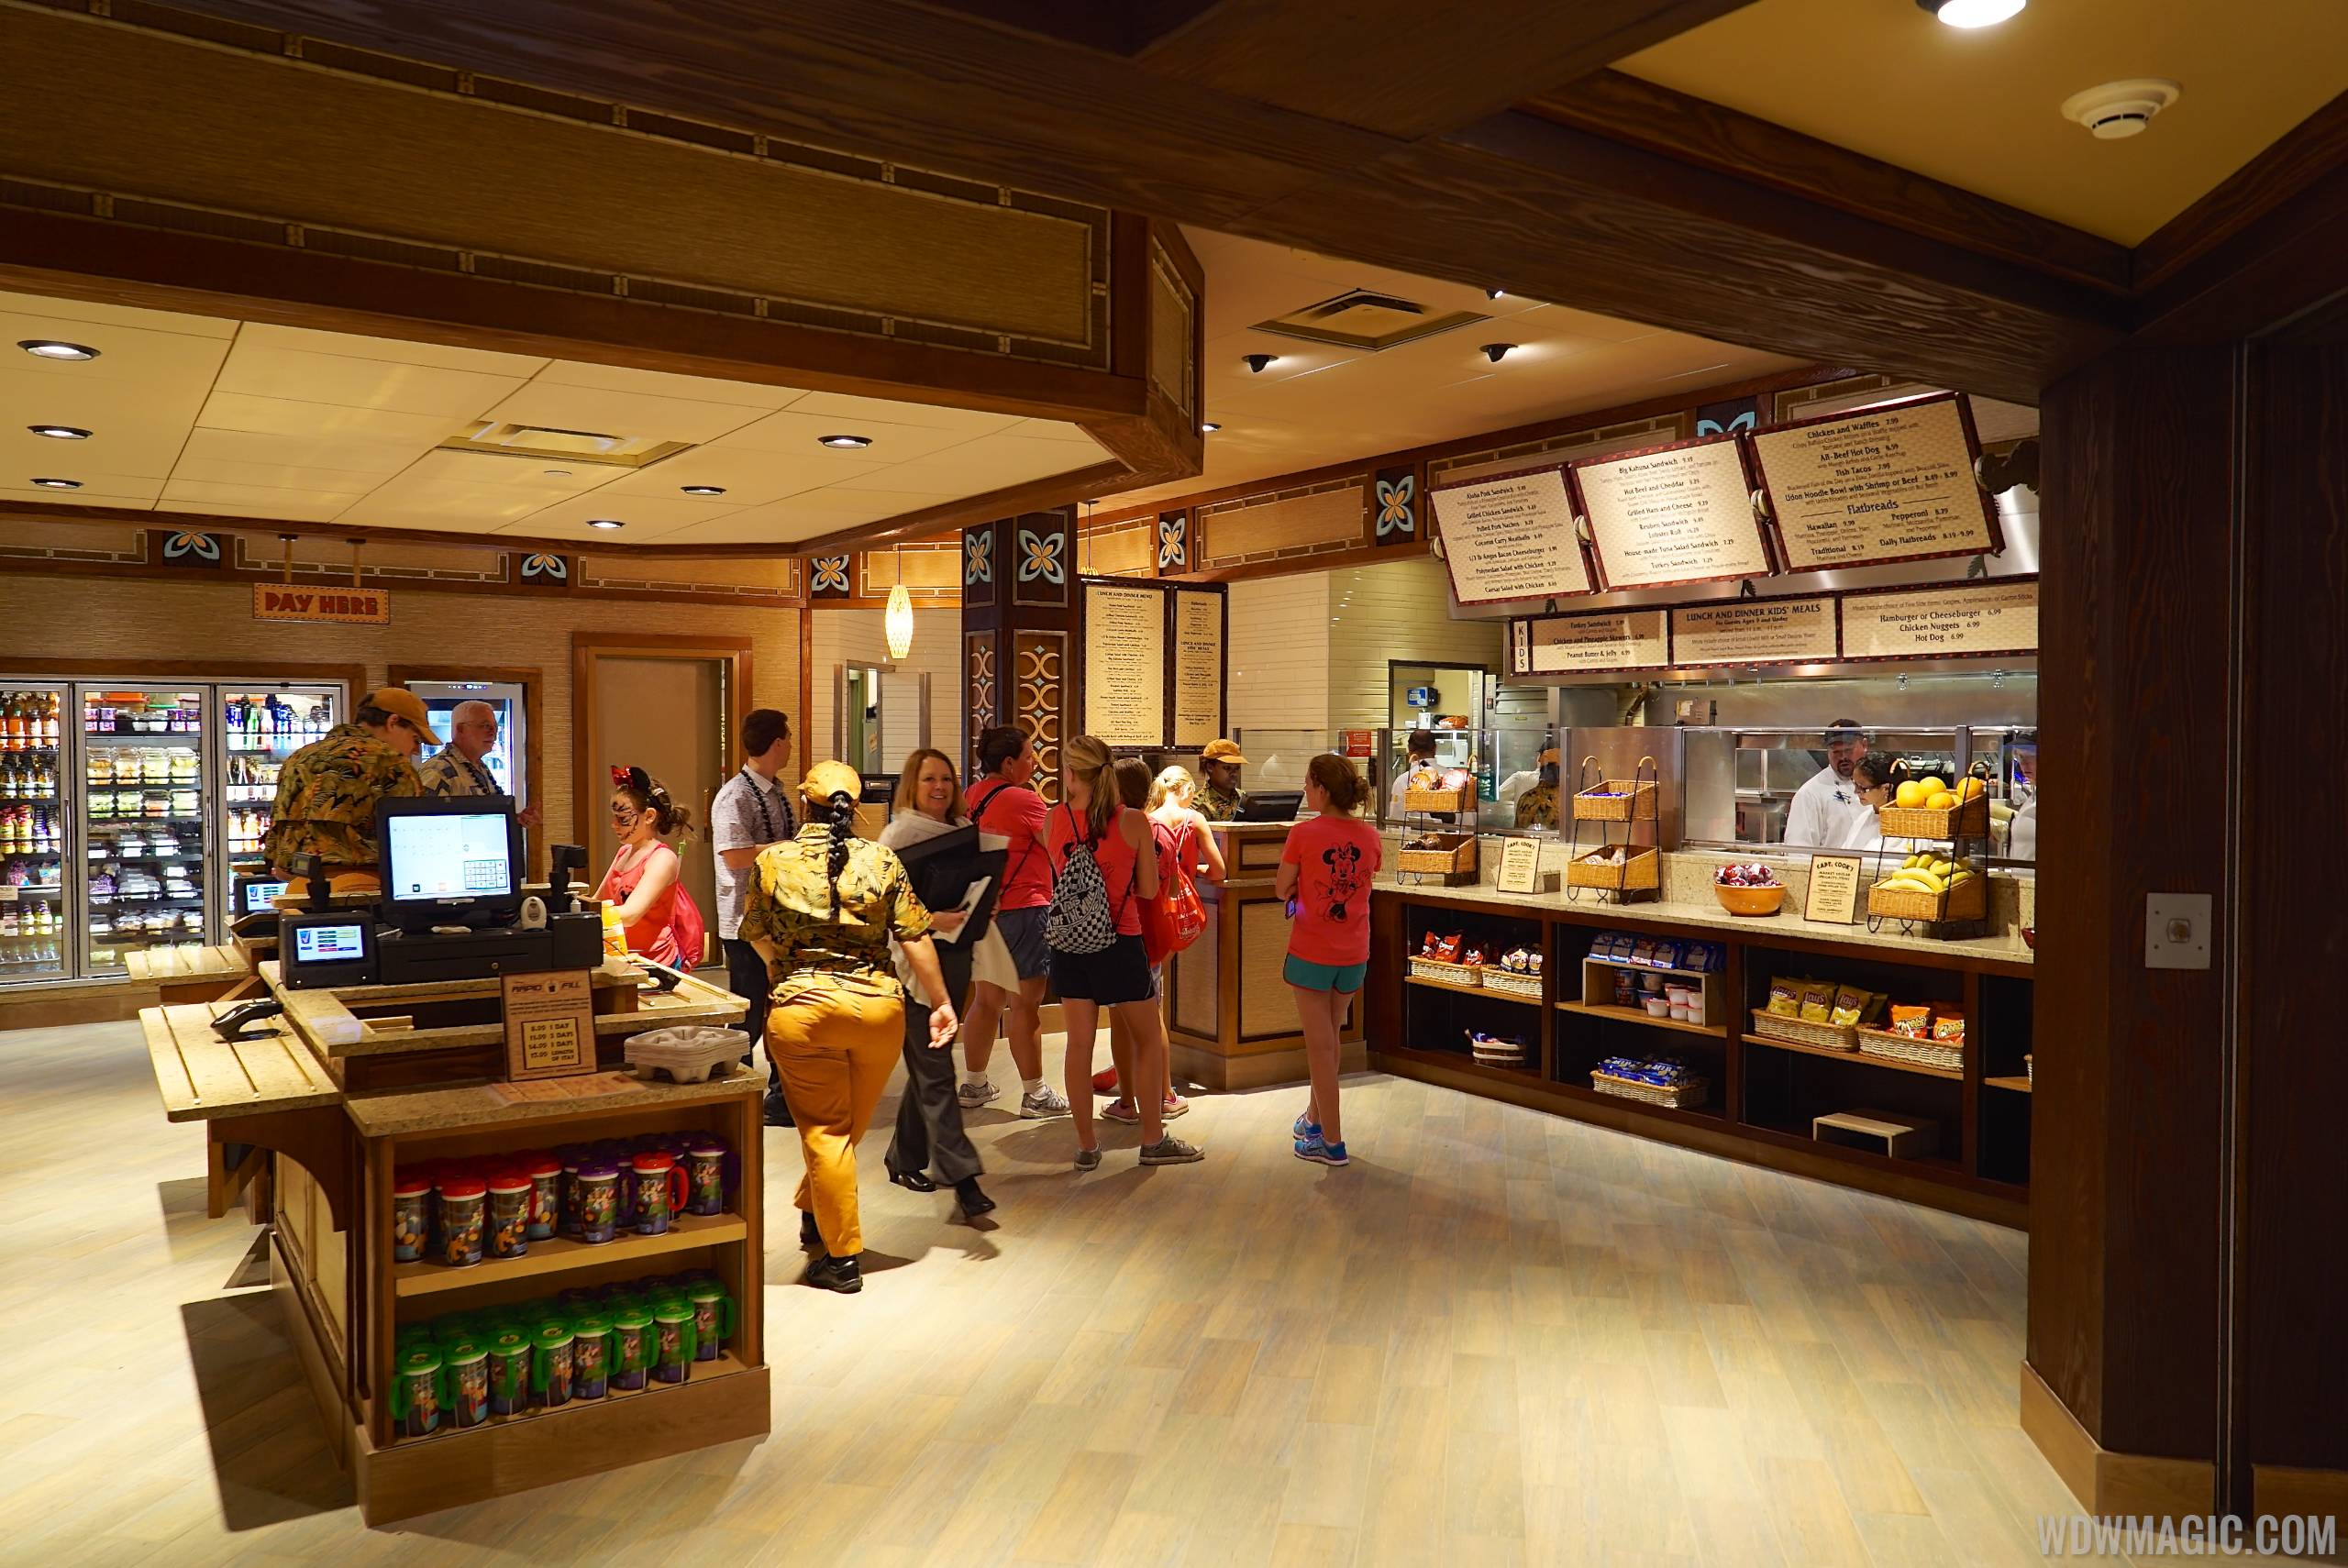 The ordering area at Captain Cook's